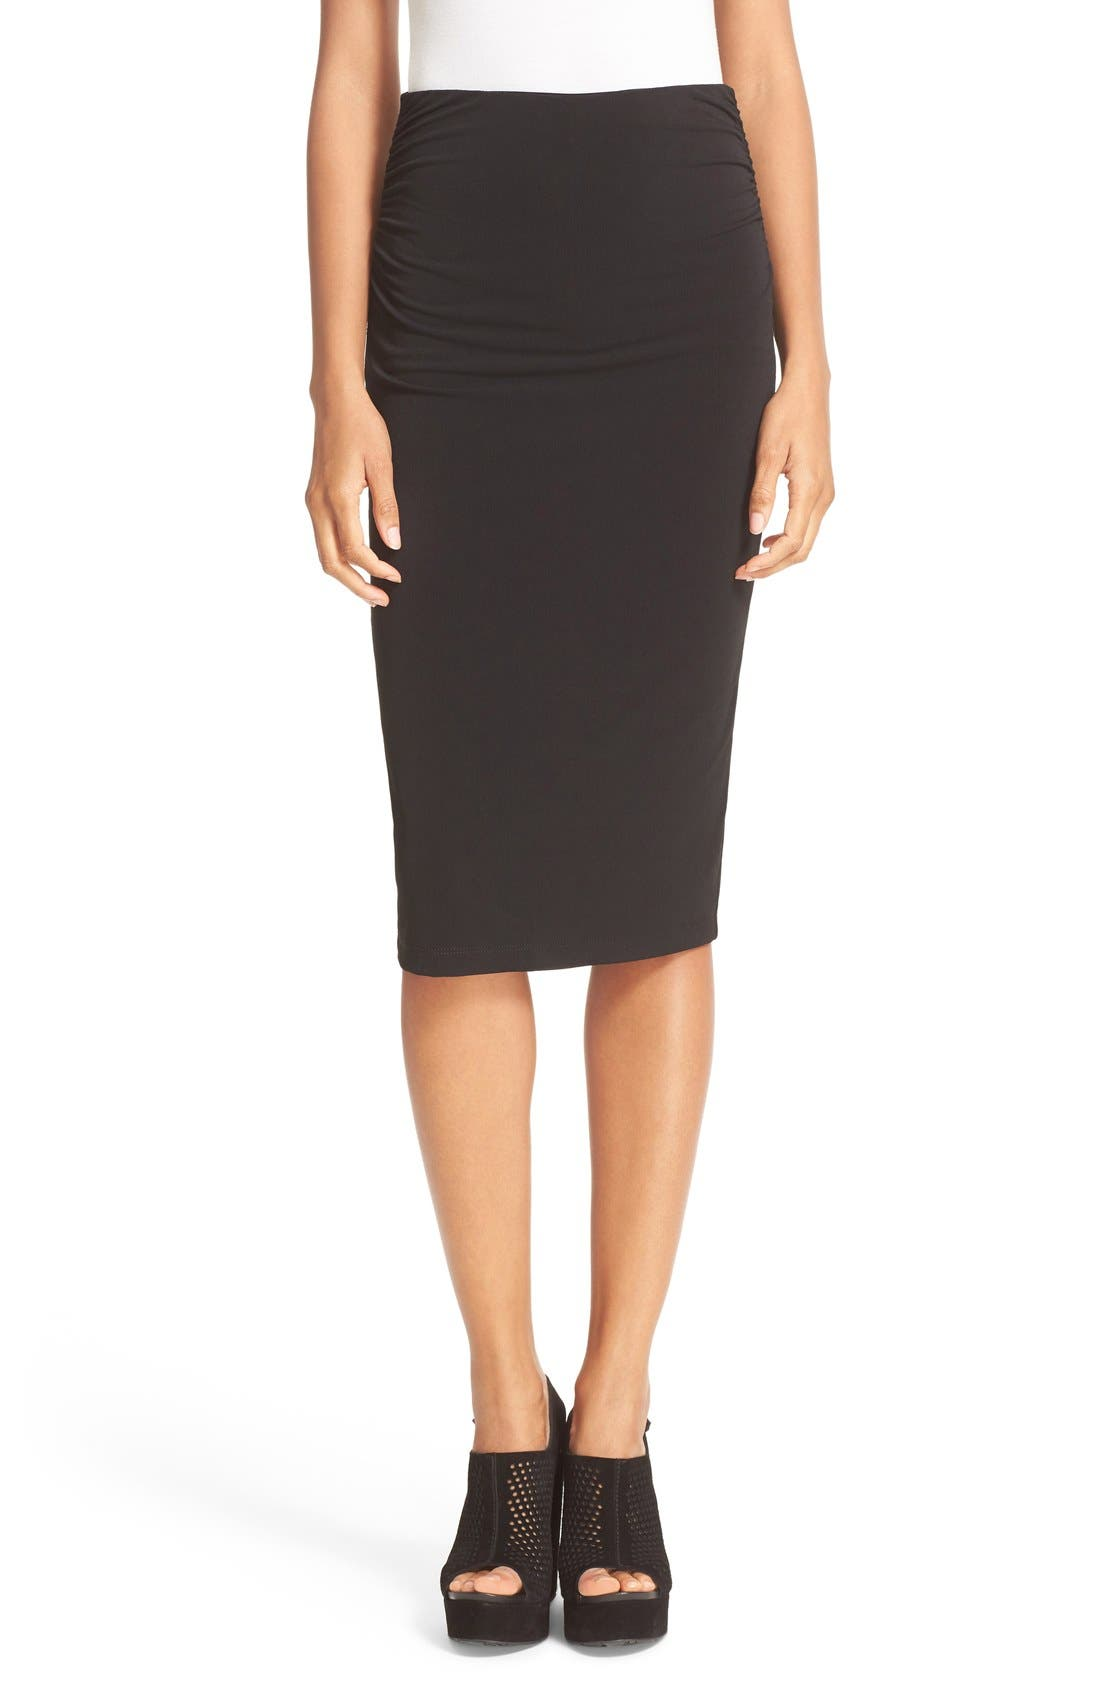 ALICE + OLIVIA Ciera Side Ruched High Waist Pencil Skirt, Main, color, 001